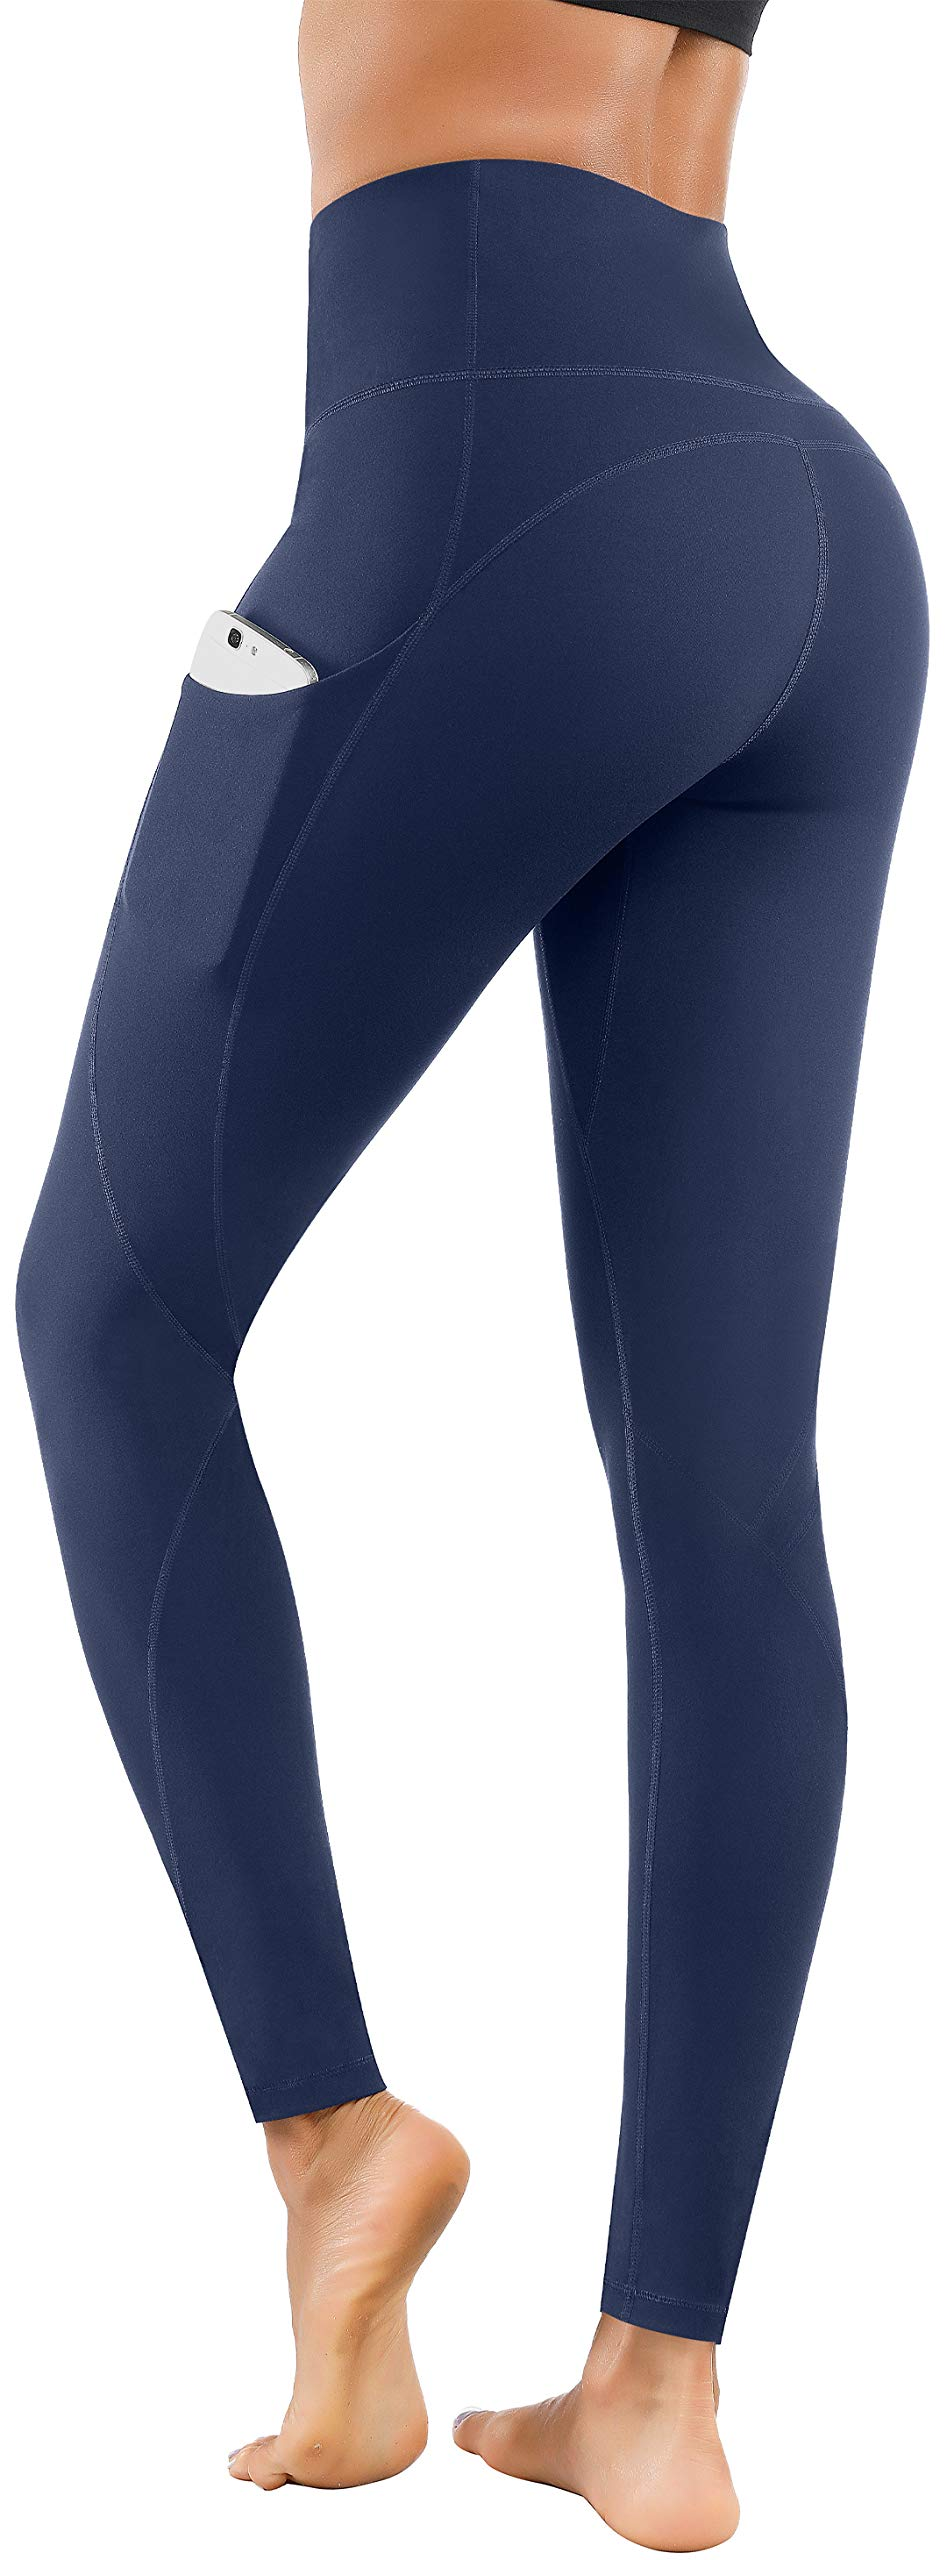 Lingswallow High Waist Yoga Pants - Yoga Pants with Pockets Tummy Control, 4 Ways Stretch Workout Running Yoga Leggings (Navy, X-Large) by Lingswallow